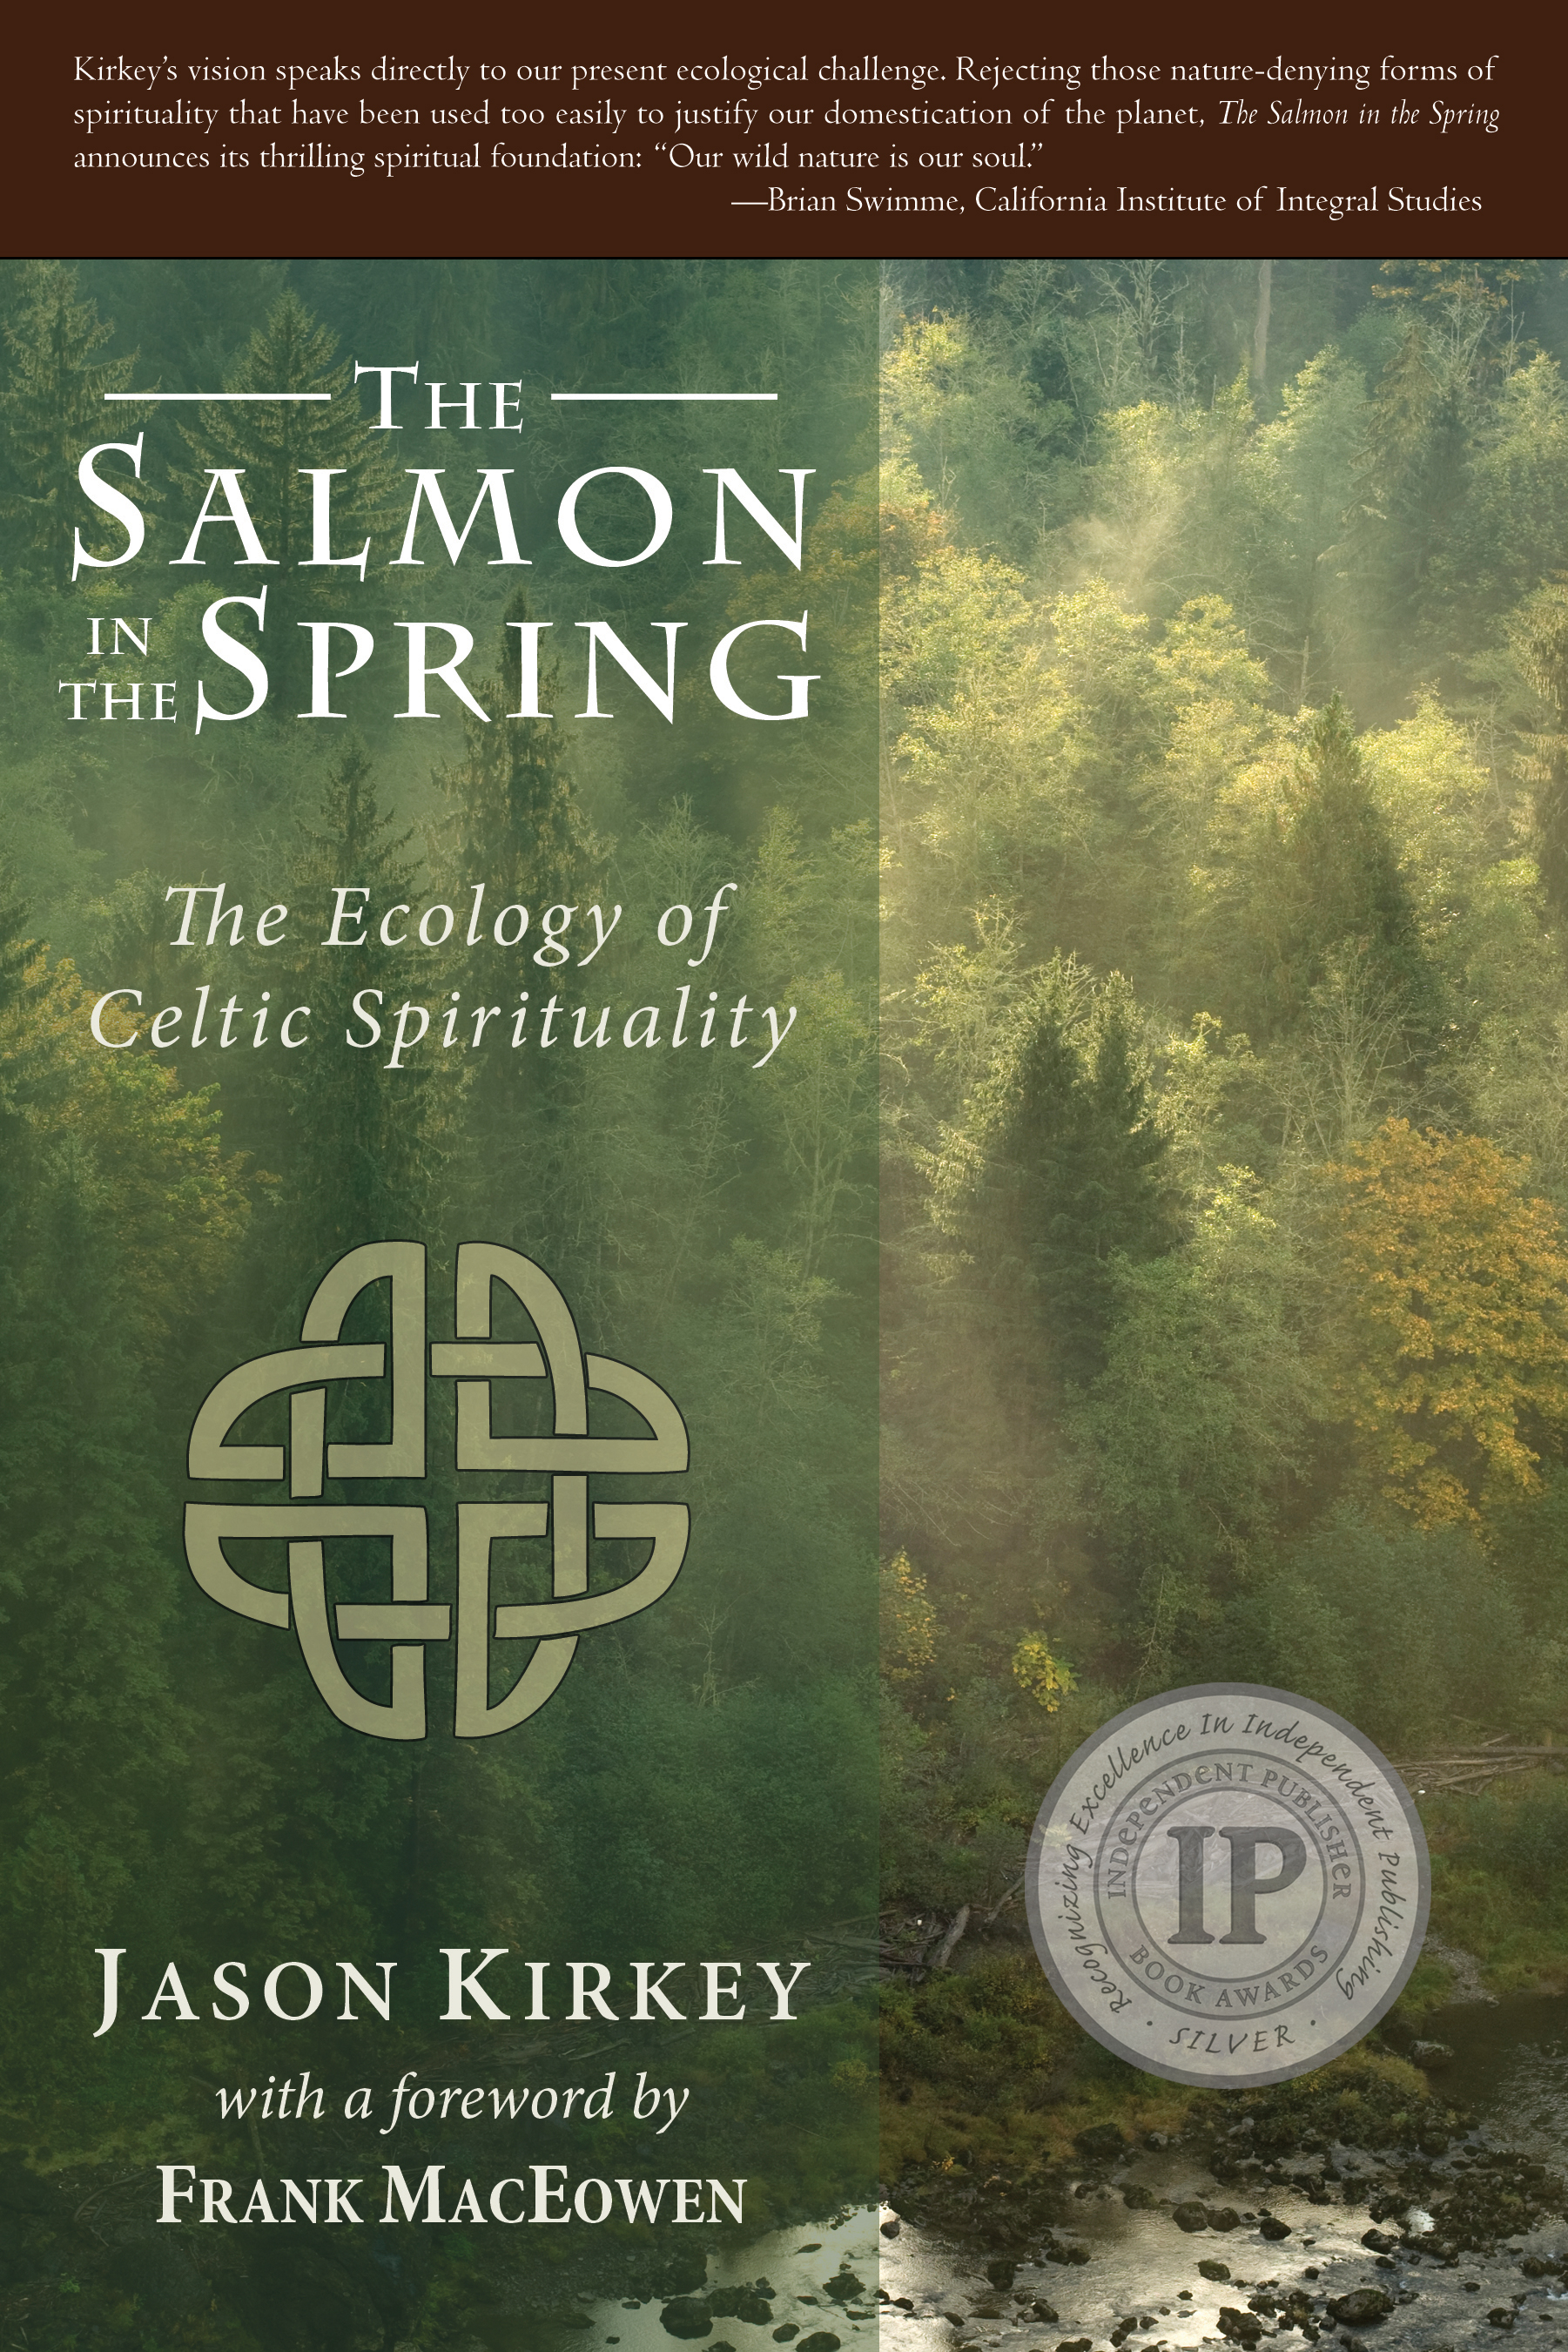 The Salmon in the Spring